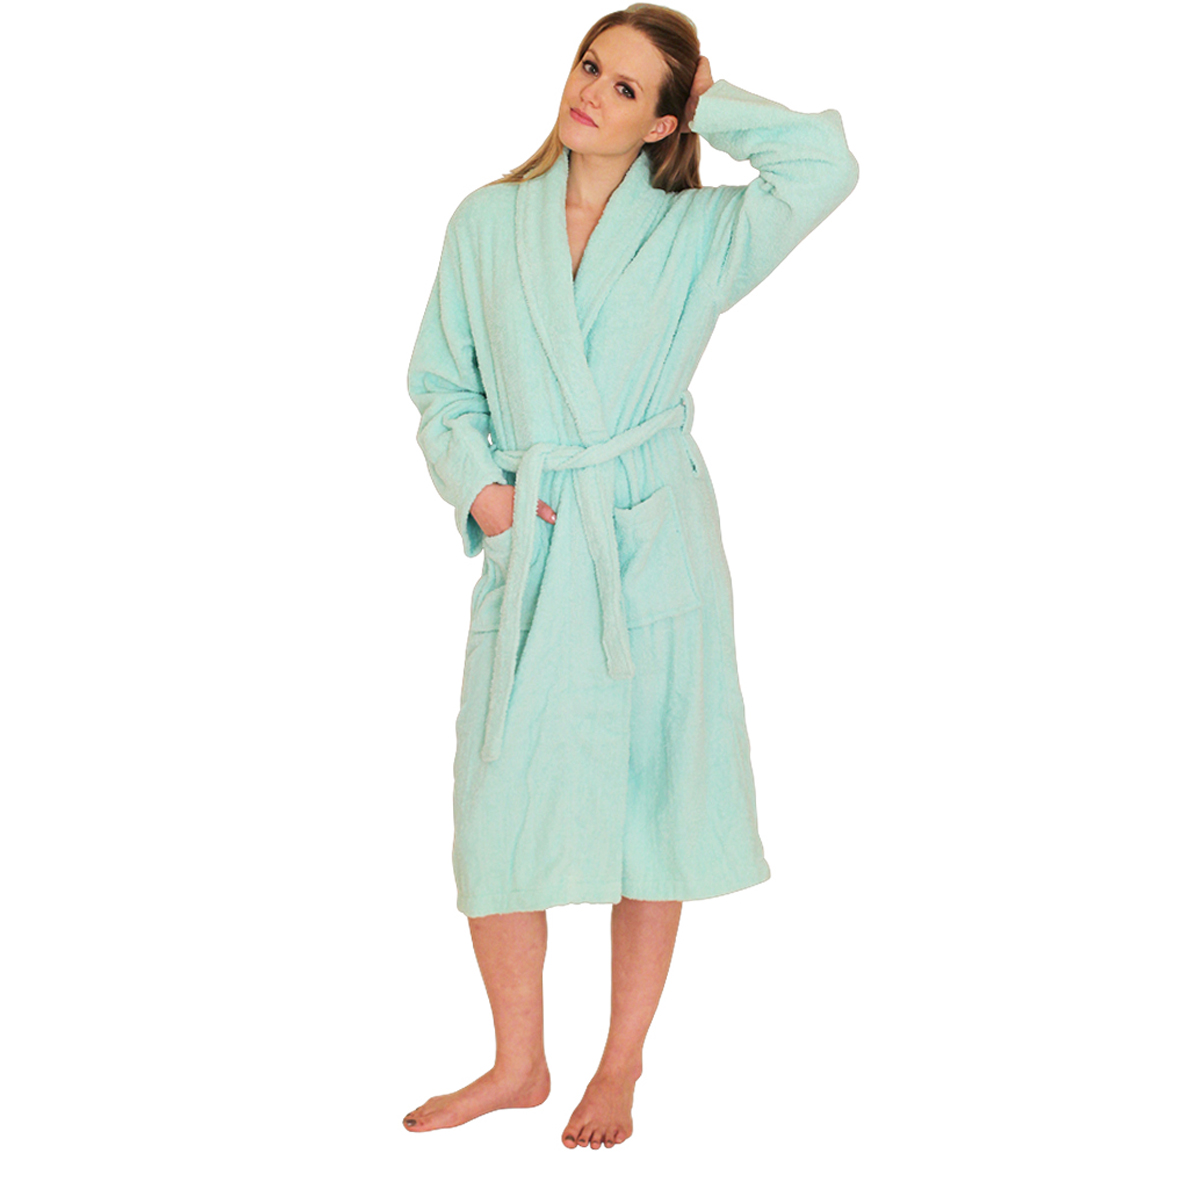 Bathrobe TerryCloth (Terry cloth) Bath Robe for women- $34.99 Colors: Navy-S/M Navy-2X/3X. Sizes: